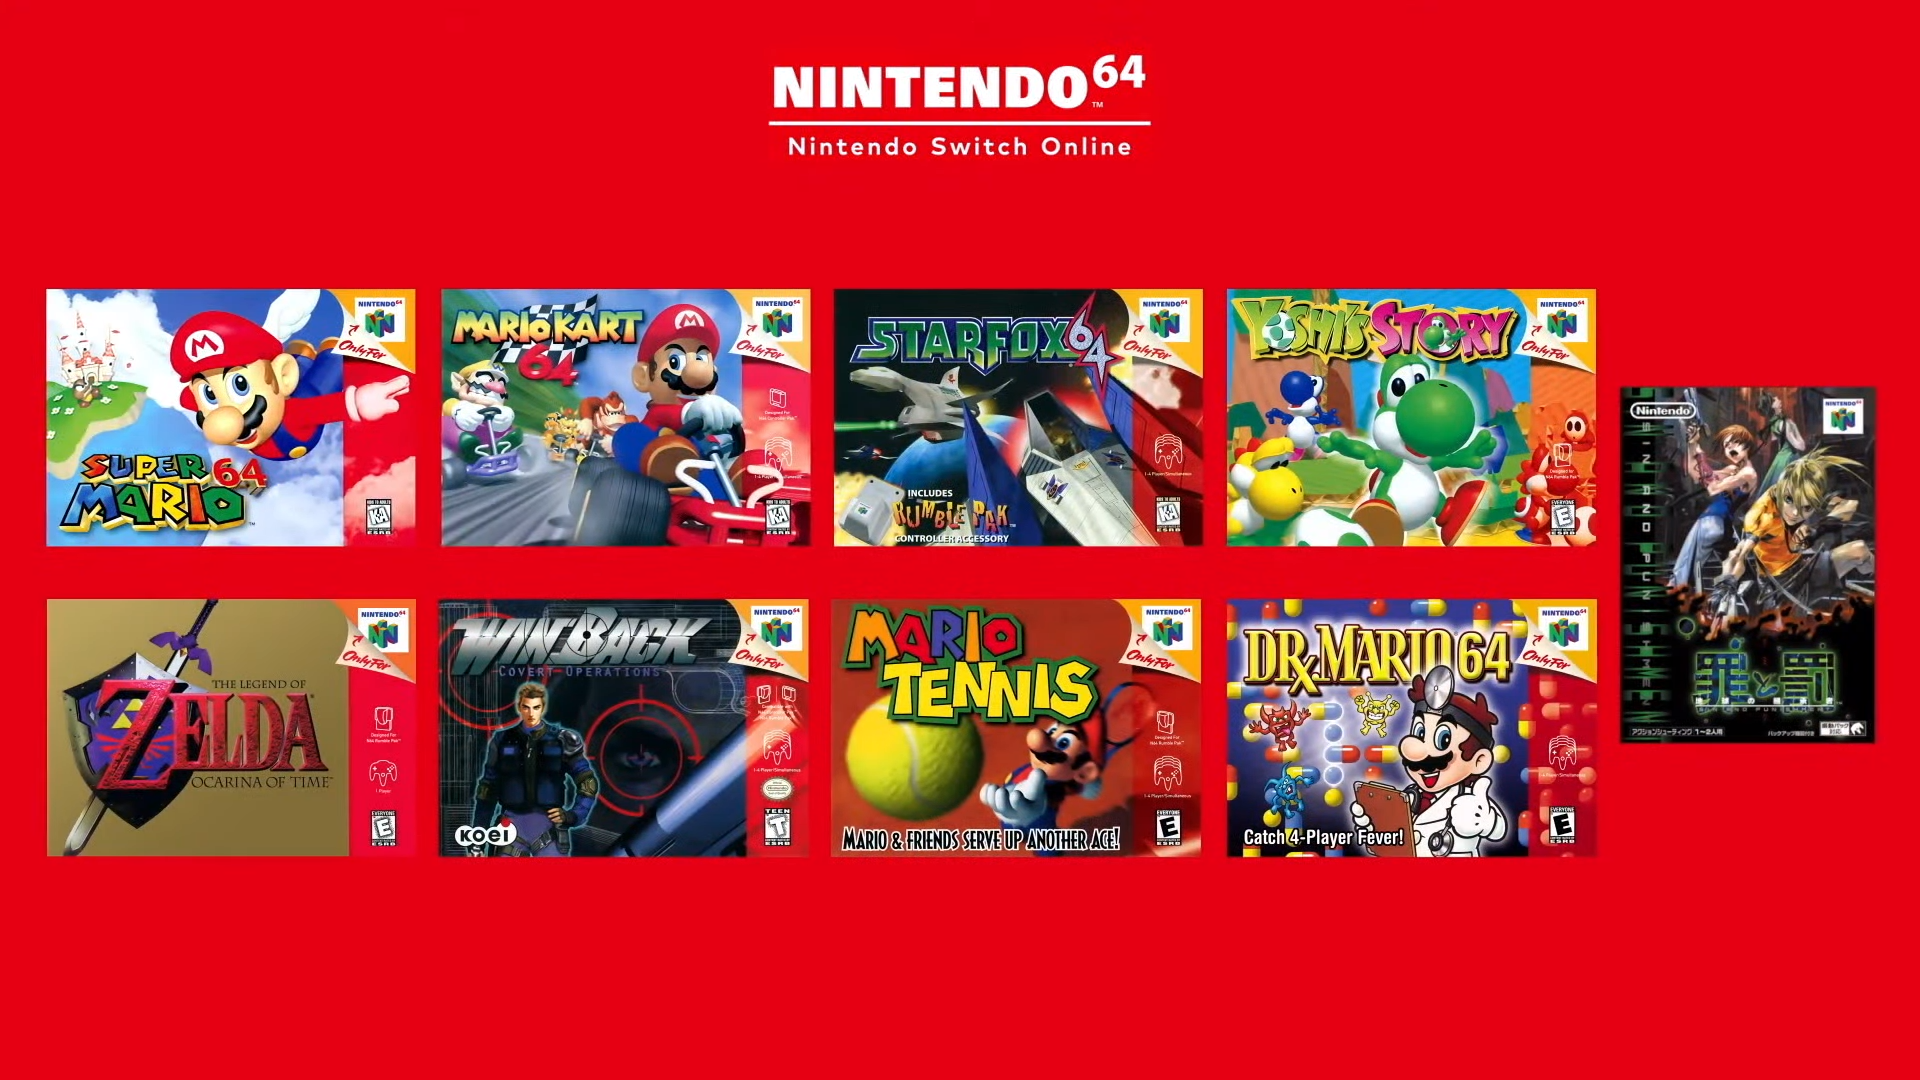 Nintendo 64 Games Are Coming to Nintendo Switch Online